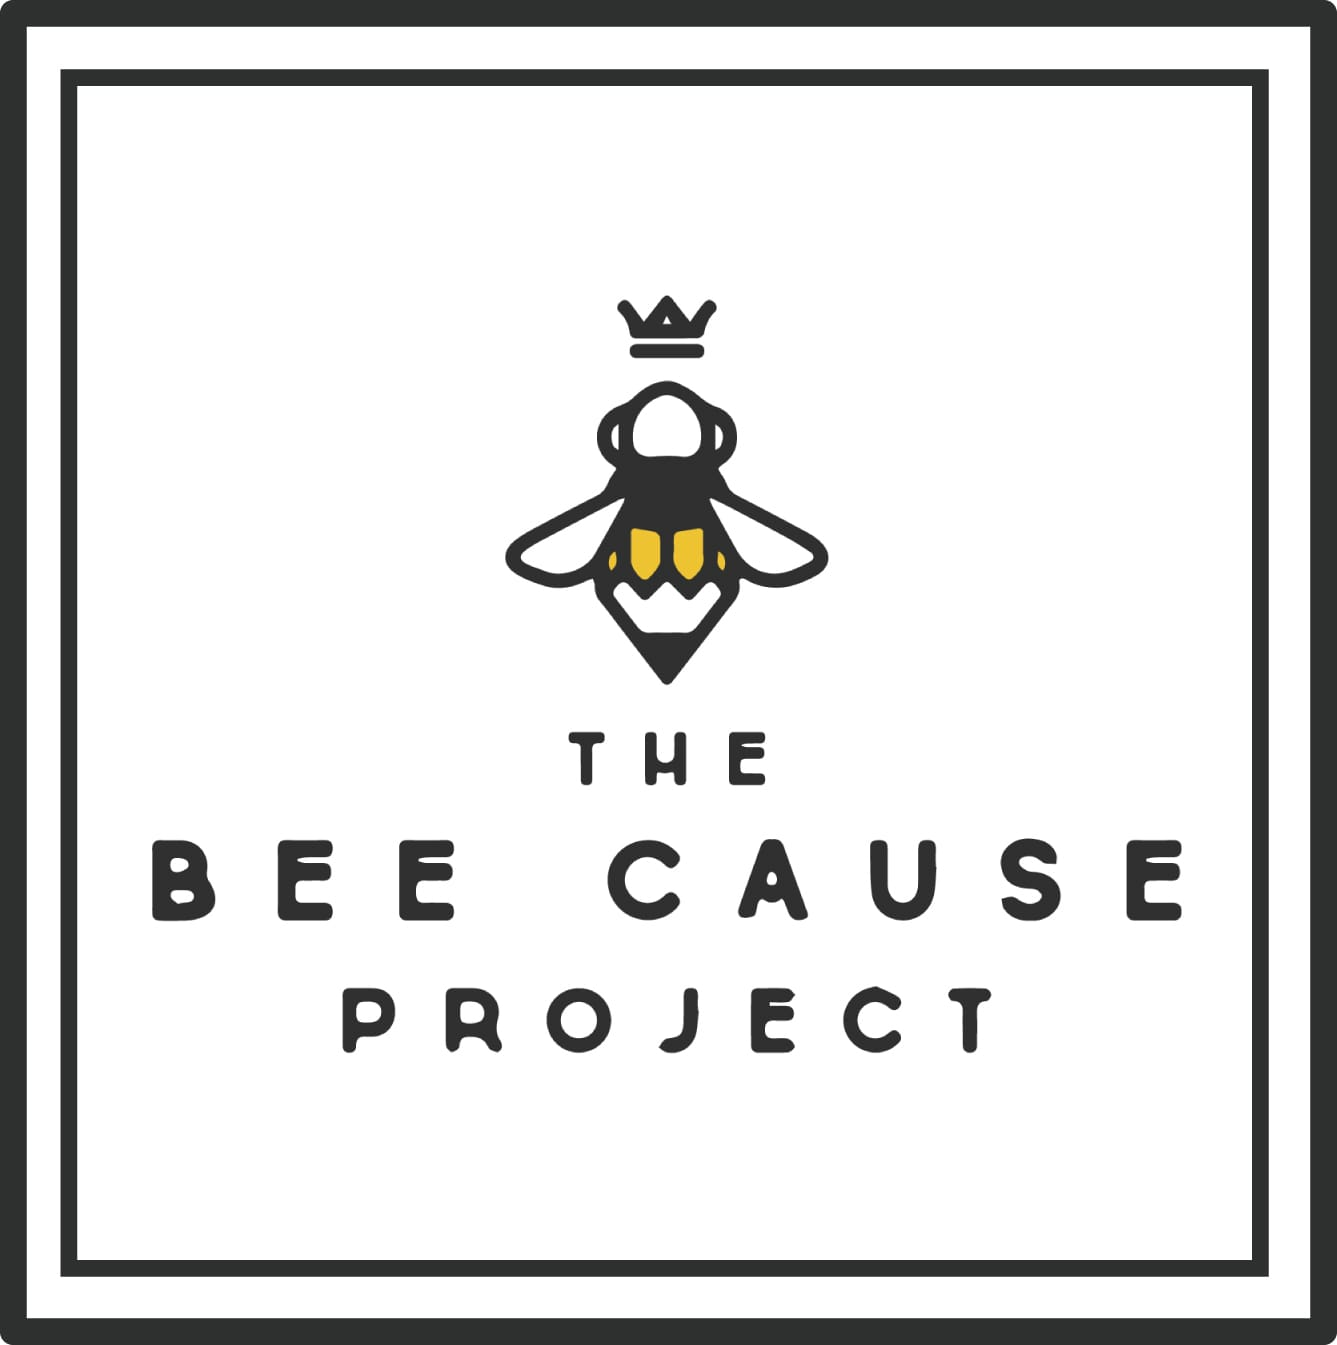 Pollinator Spaces Project